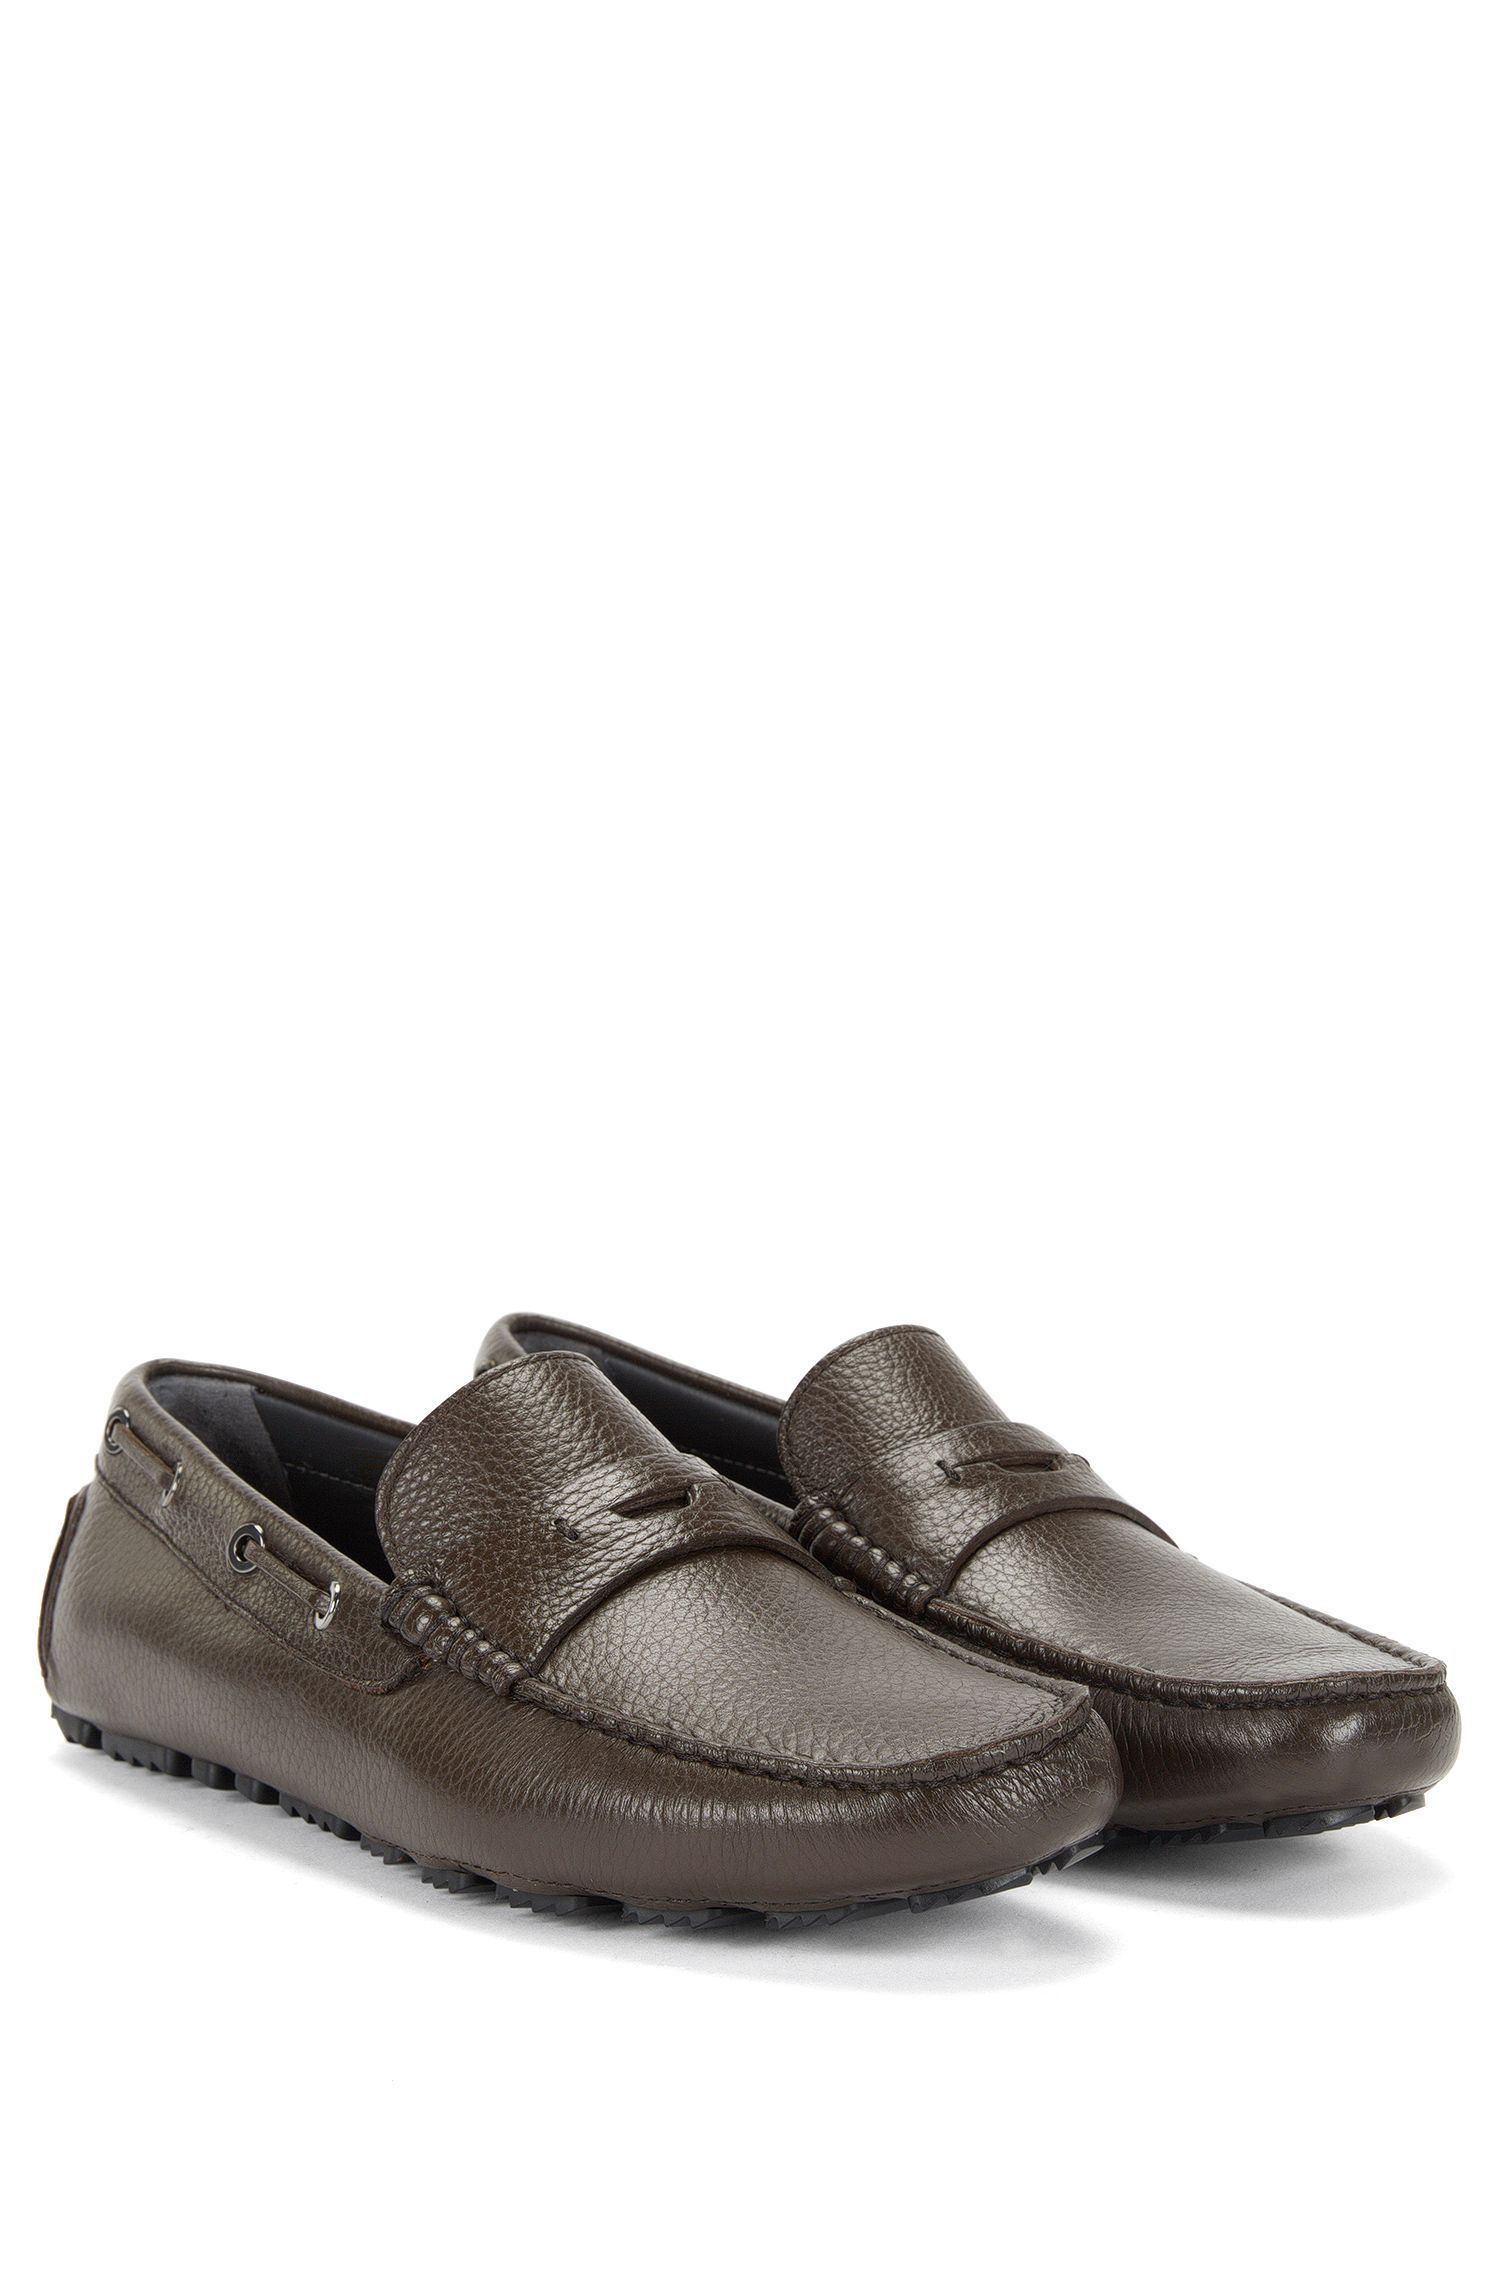 'Drilleo' | Calfskin Grained Driving Moccasin